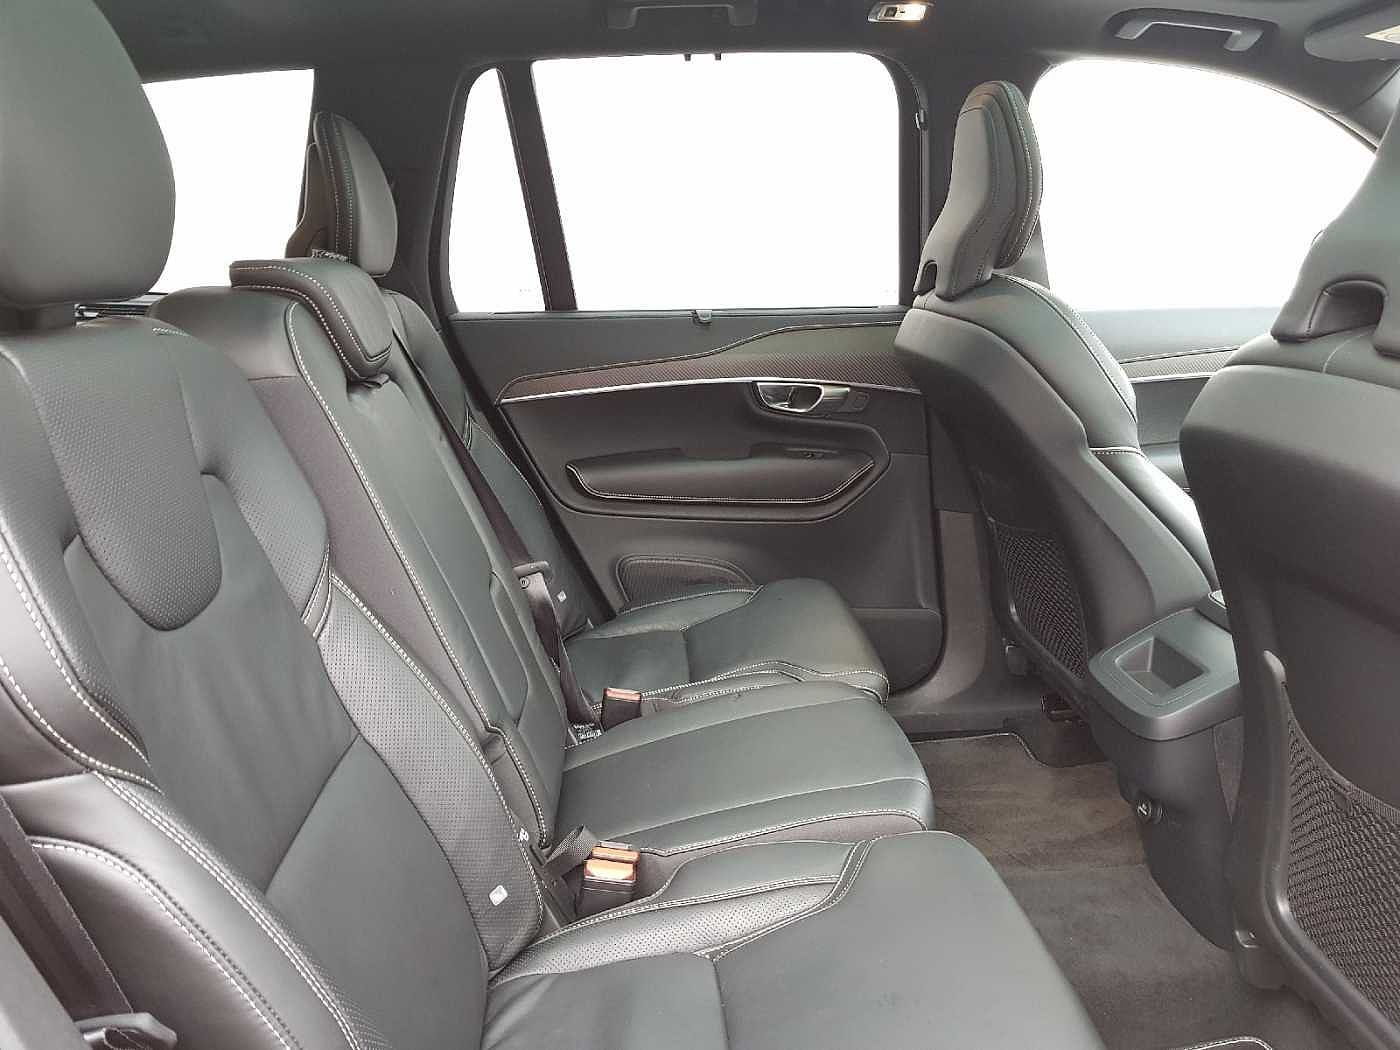 Volvo  D5 AWD R-Design Auto (Panoramic Sunroof, Full Leather, 360 Camera, BLIS)